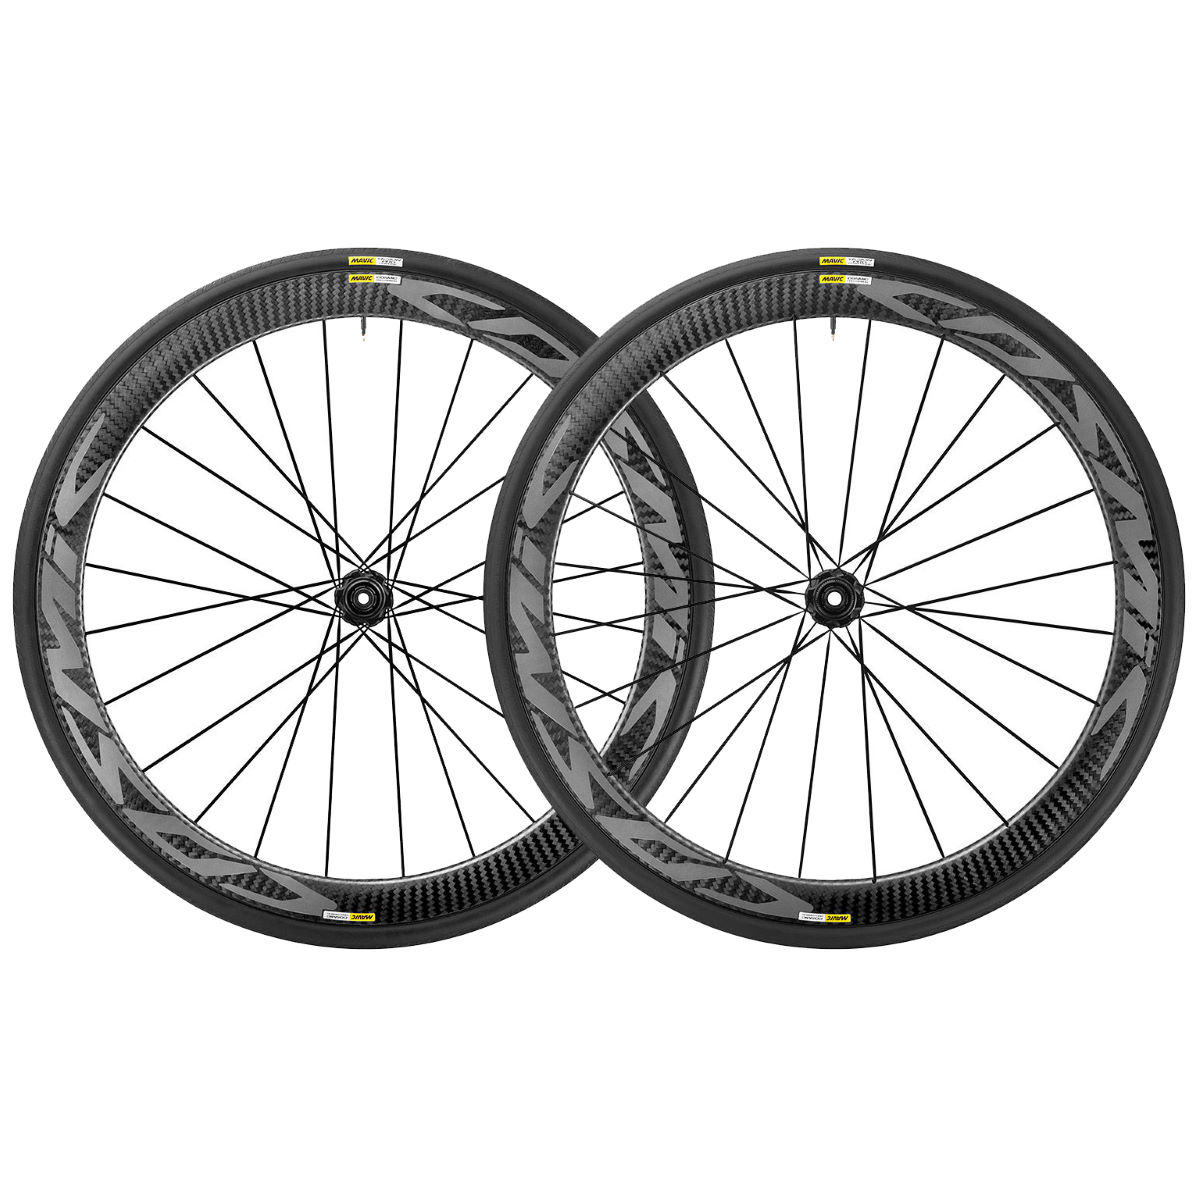 Wheel set Mavic Cosmic Pro Carbon Disc (WTS, 6 screws) - Competition wheels